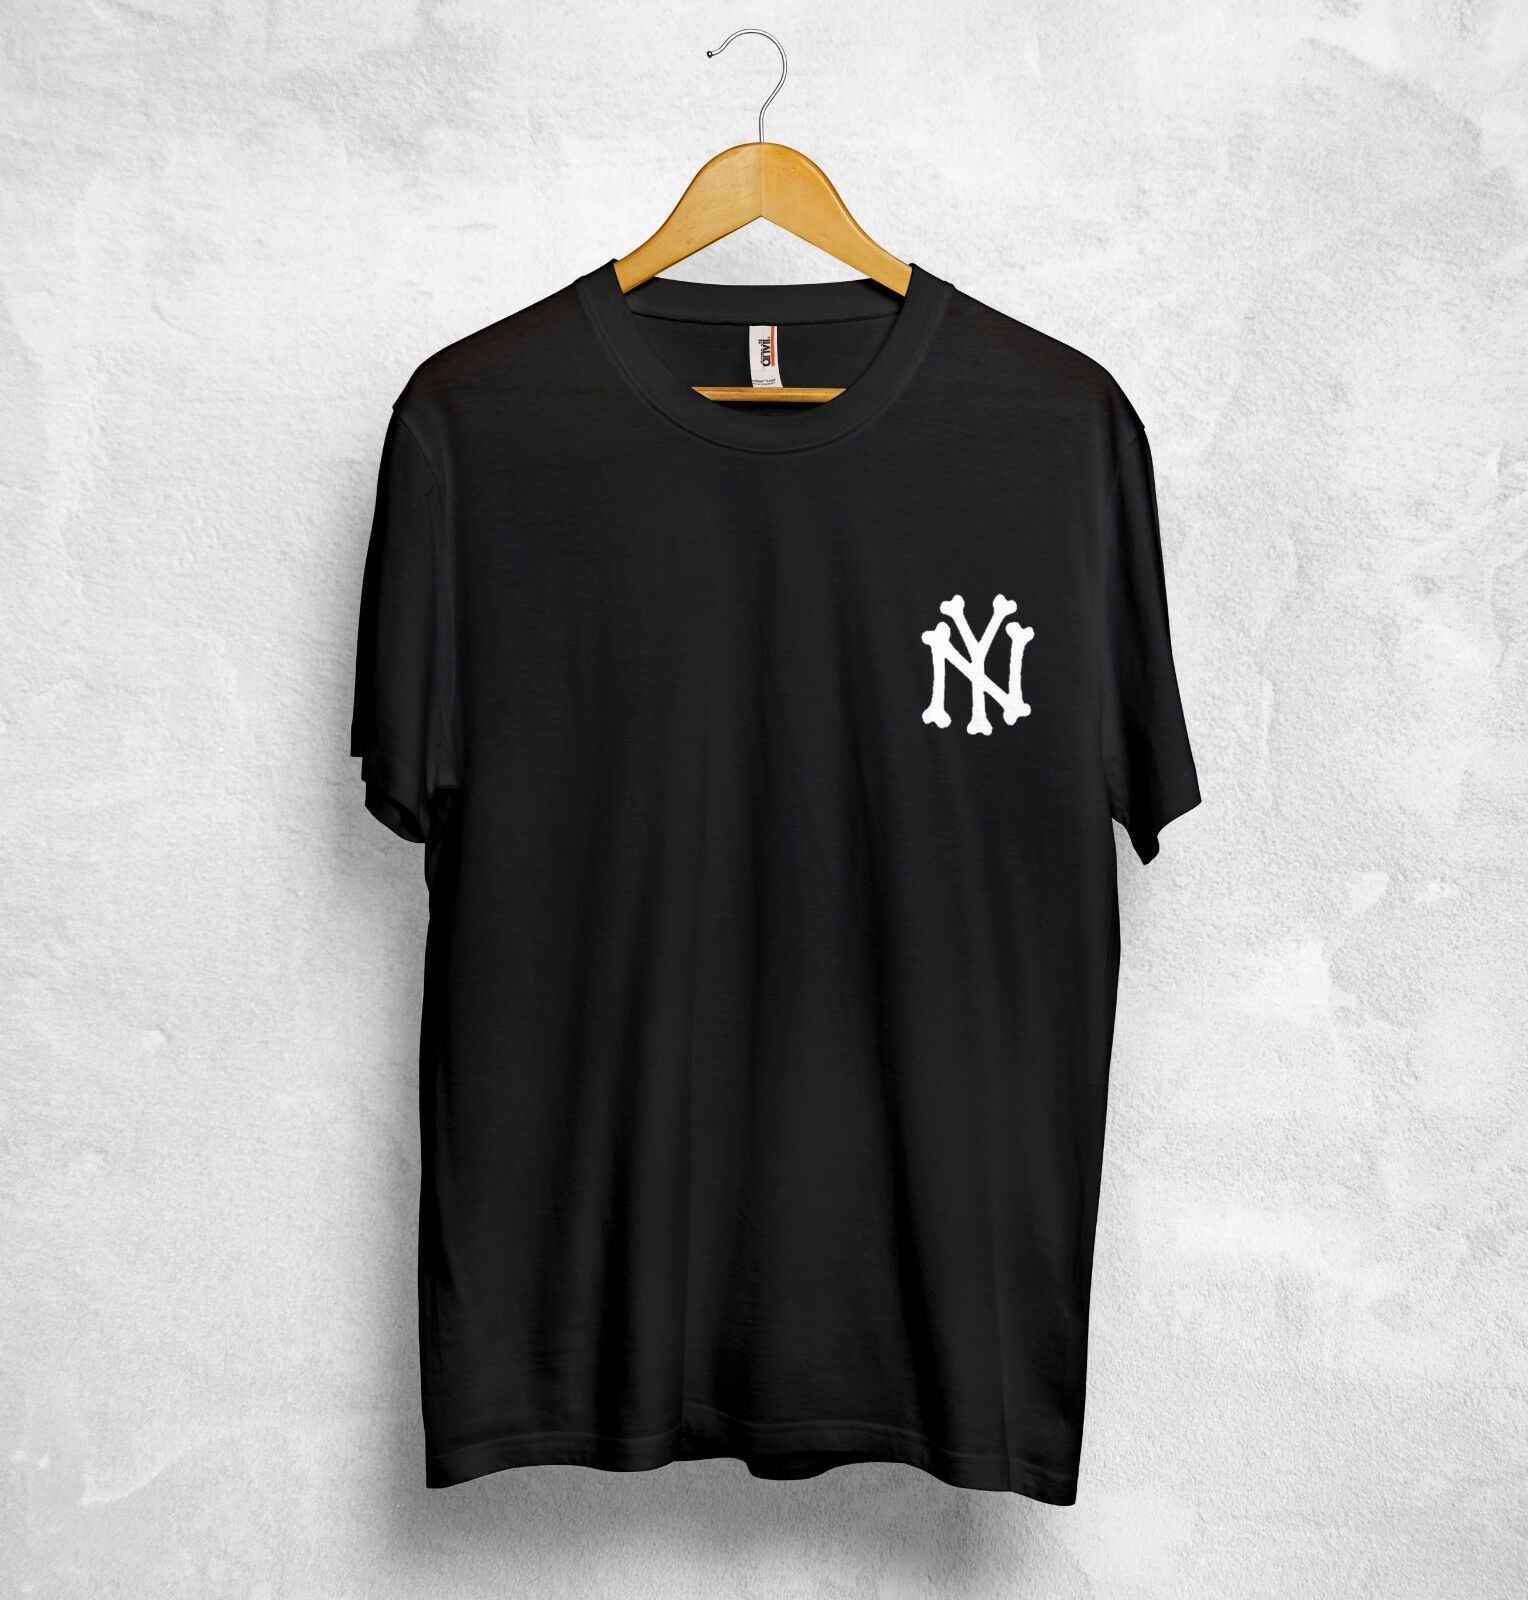 NY Logo Botten T-shirt Top Yankees USA Stijl Baseball Retro Sport Amerika Gift